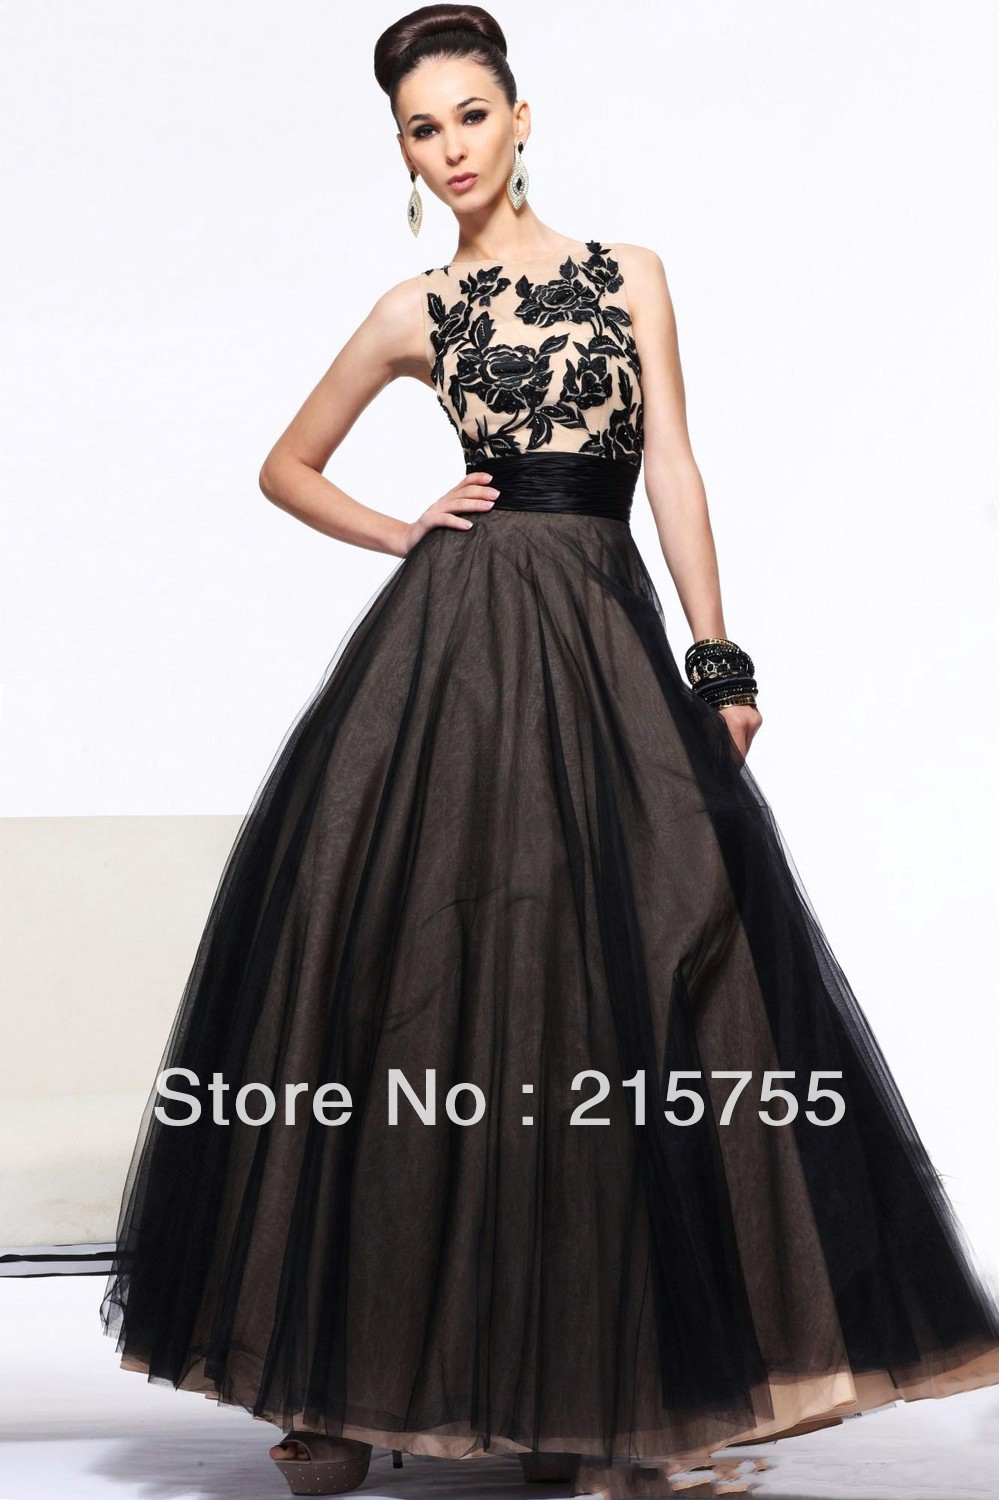 Mid Length Ball Gown | Dress images